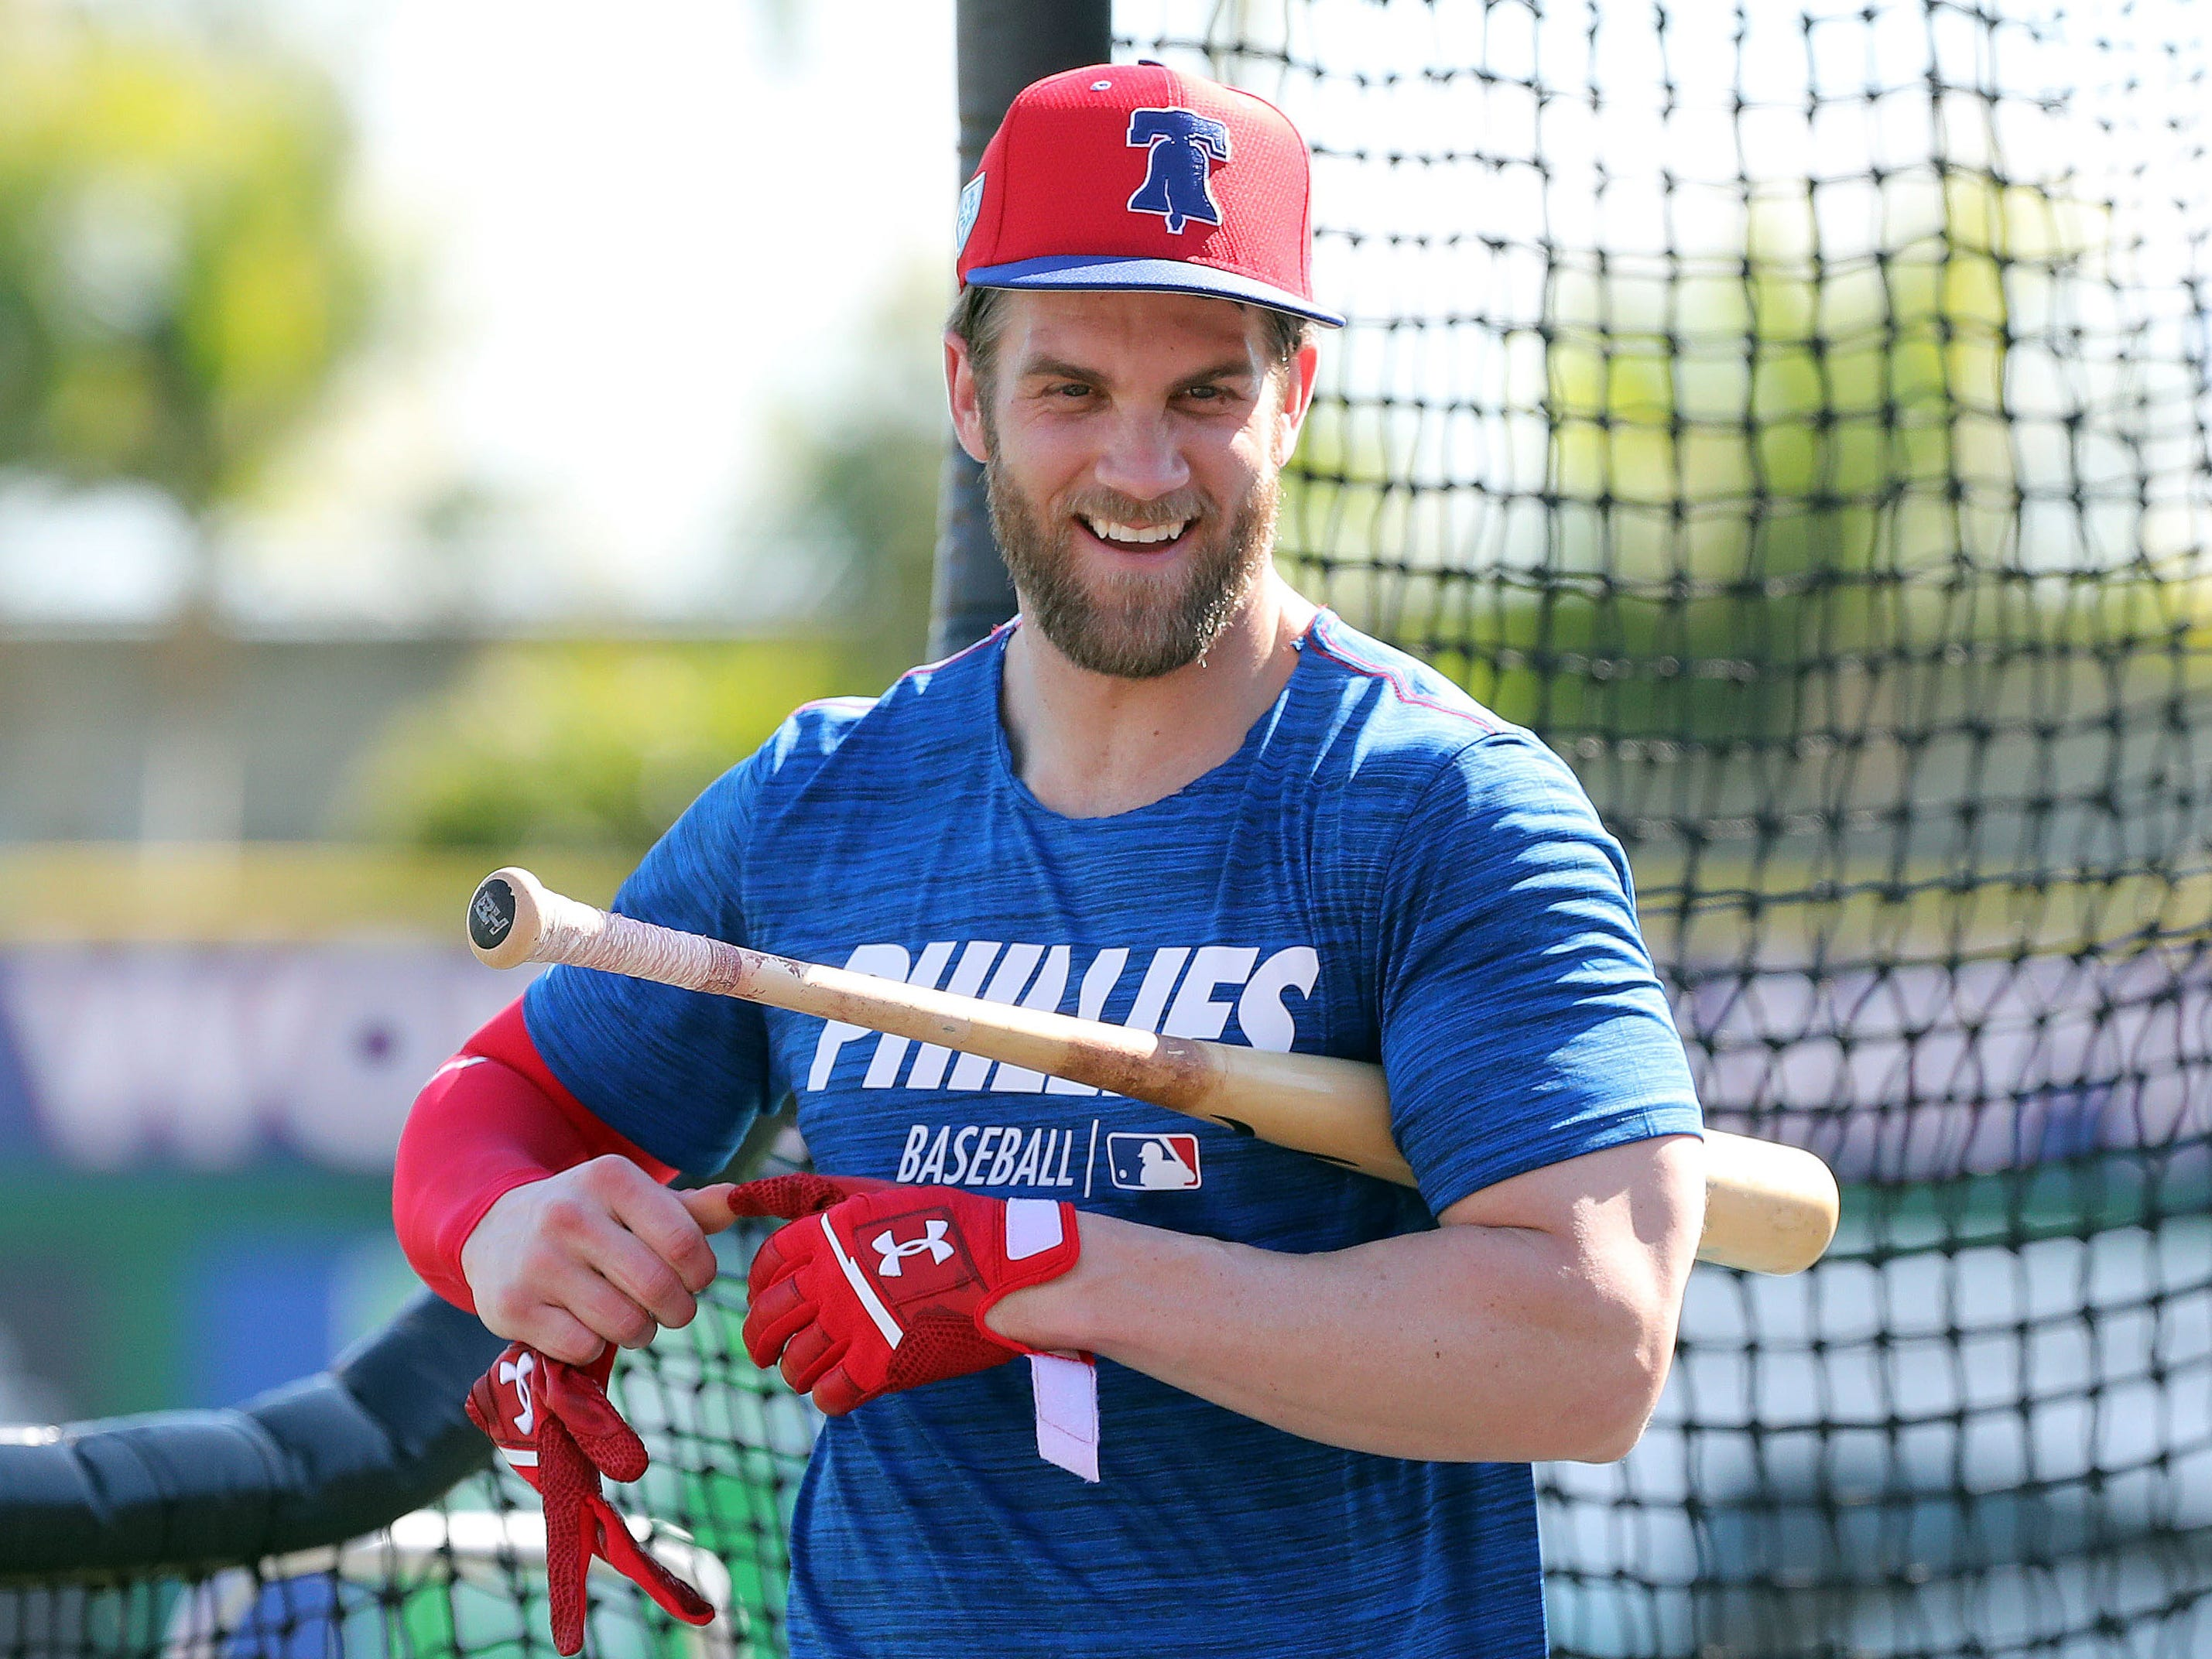 Tampering? Bryce Harper discusses recruiting Angels star Mike Trout to join Phillies